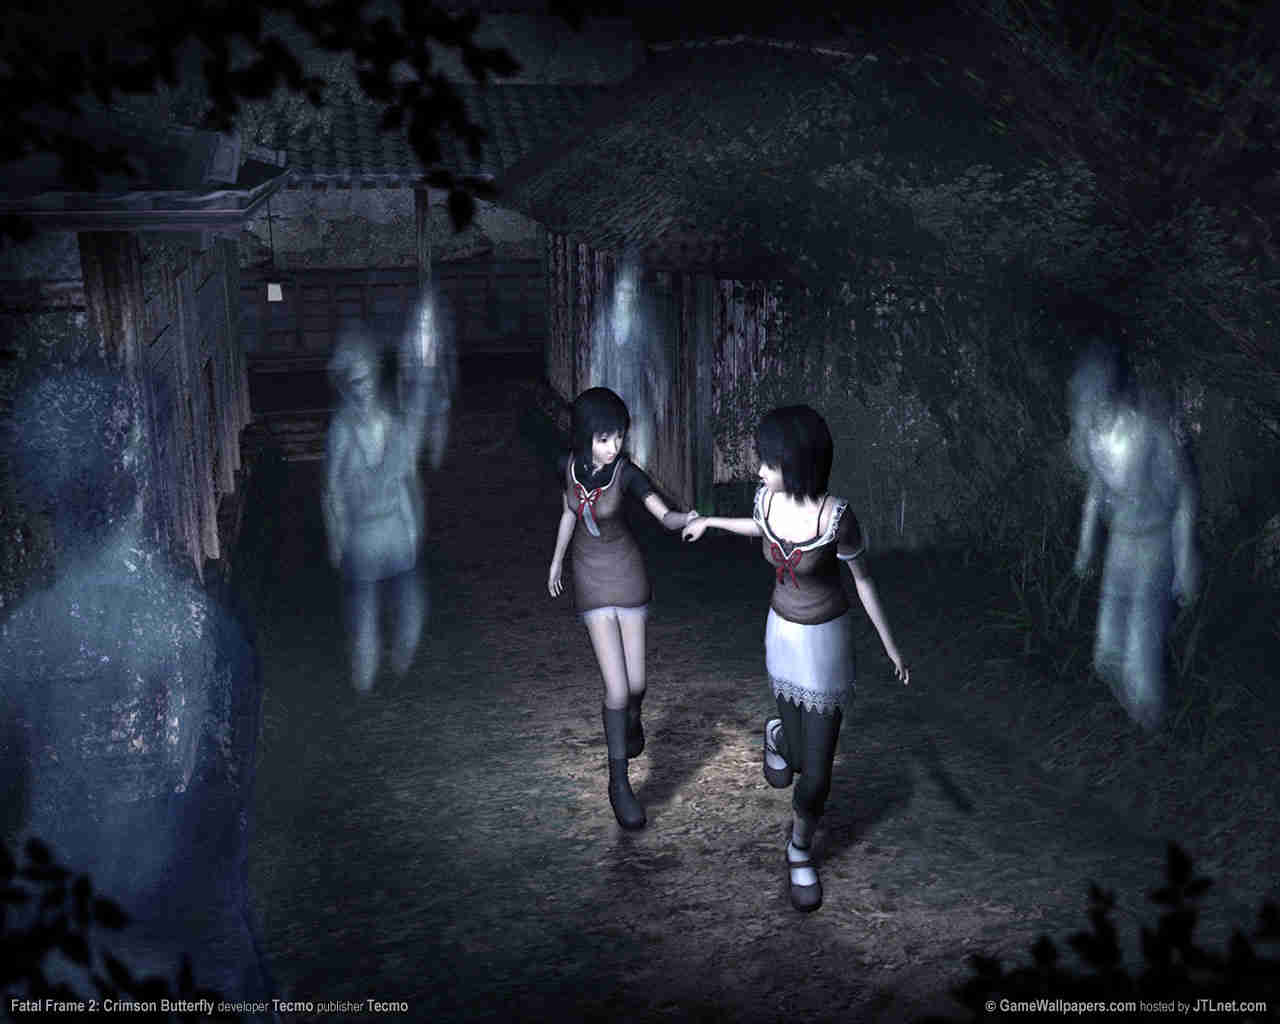 Fatal Frame 2 (II) Crimson Butterfly Game For PC Free Download Full ...